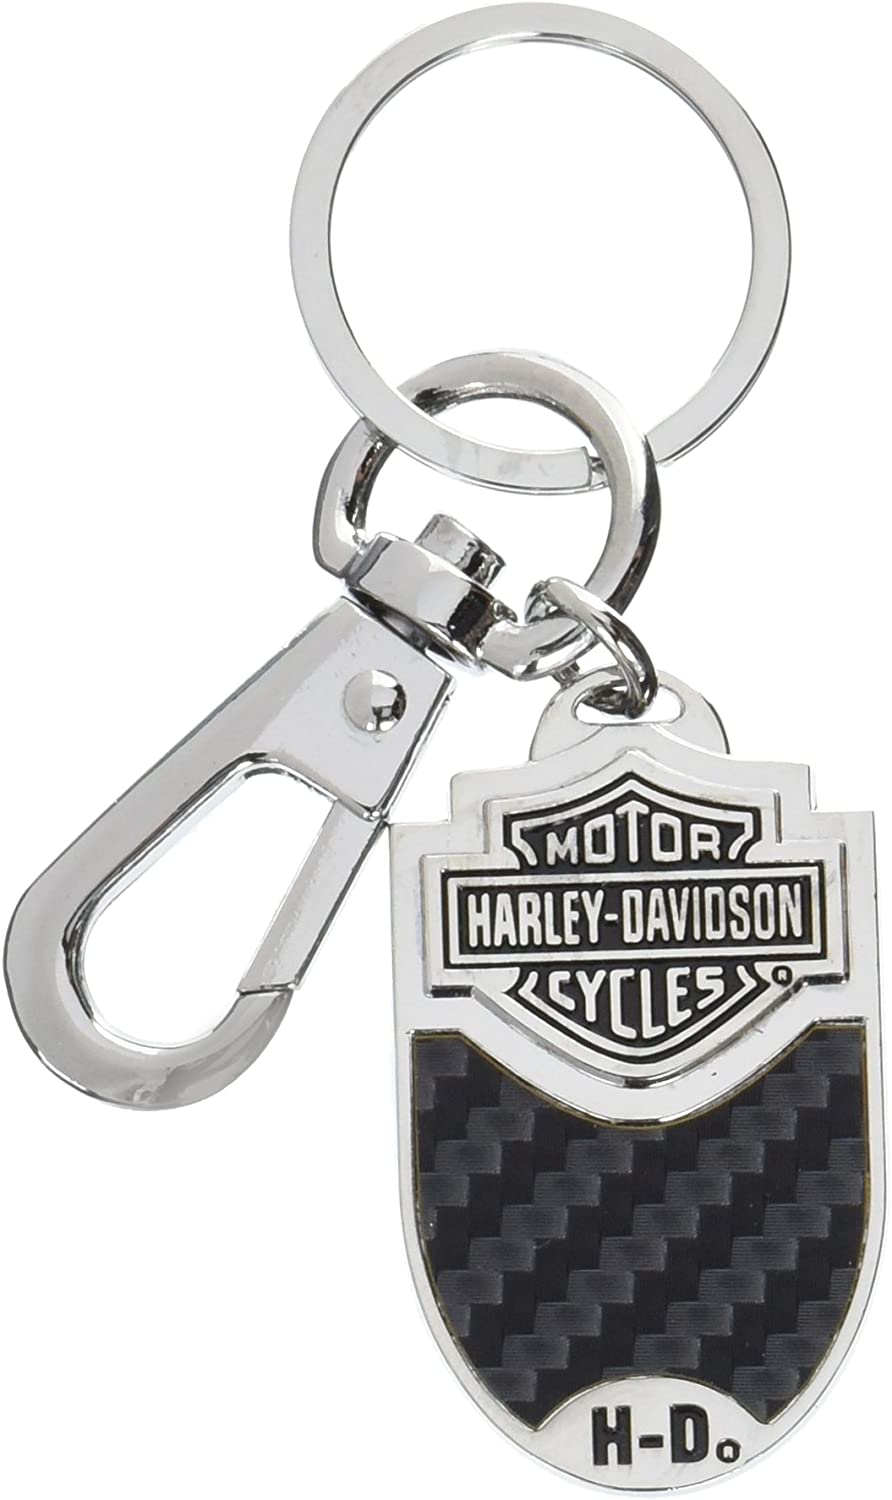 Harley-Davidson Bar & Shield Carbon Fiber Vinyl Inlay Key Chain